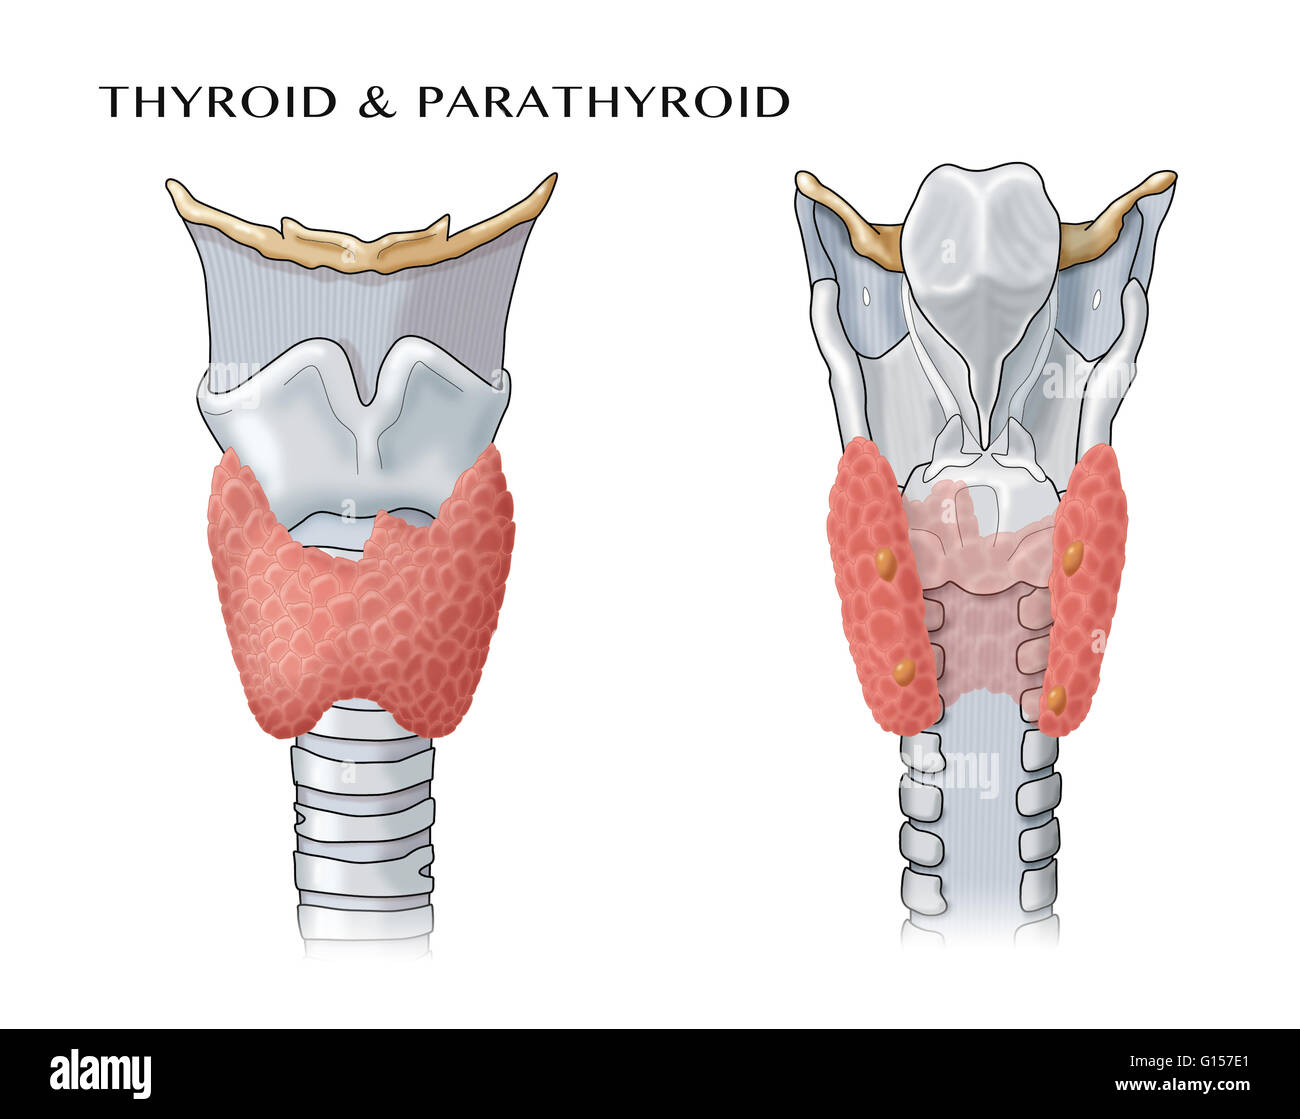 Anatomical Illustration Of The Thyroid And Parathyroid Glands